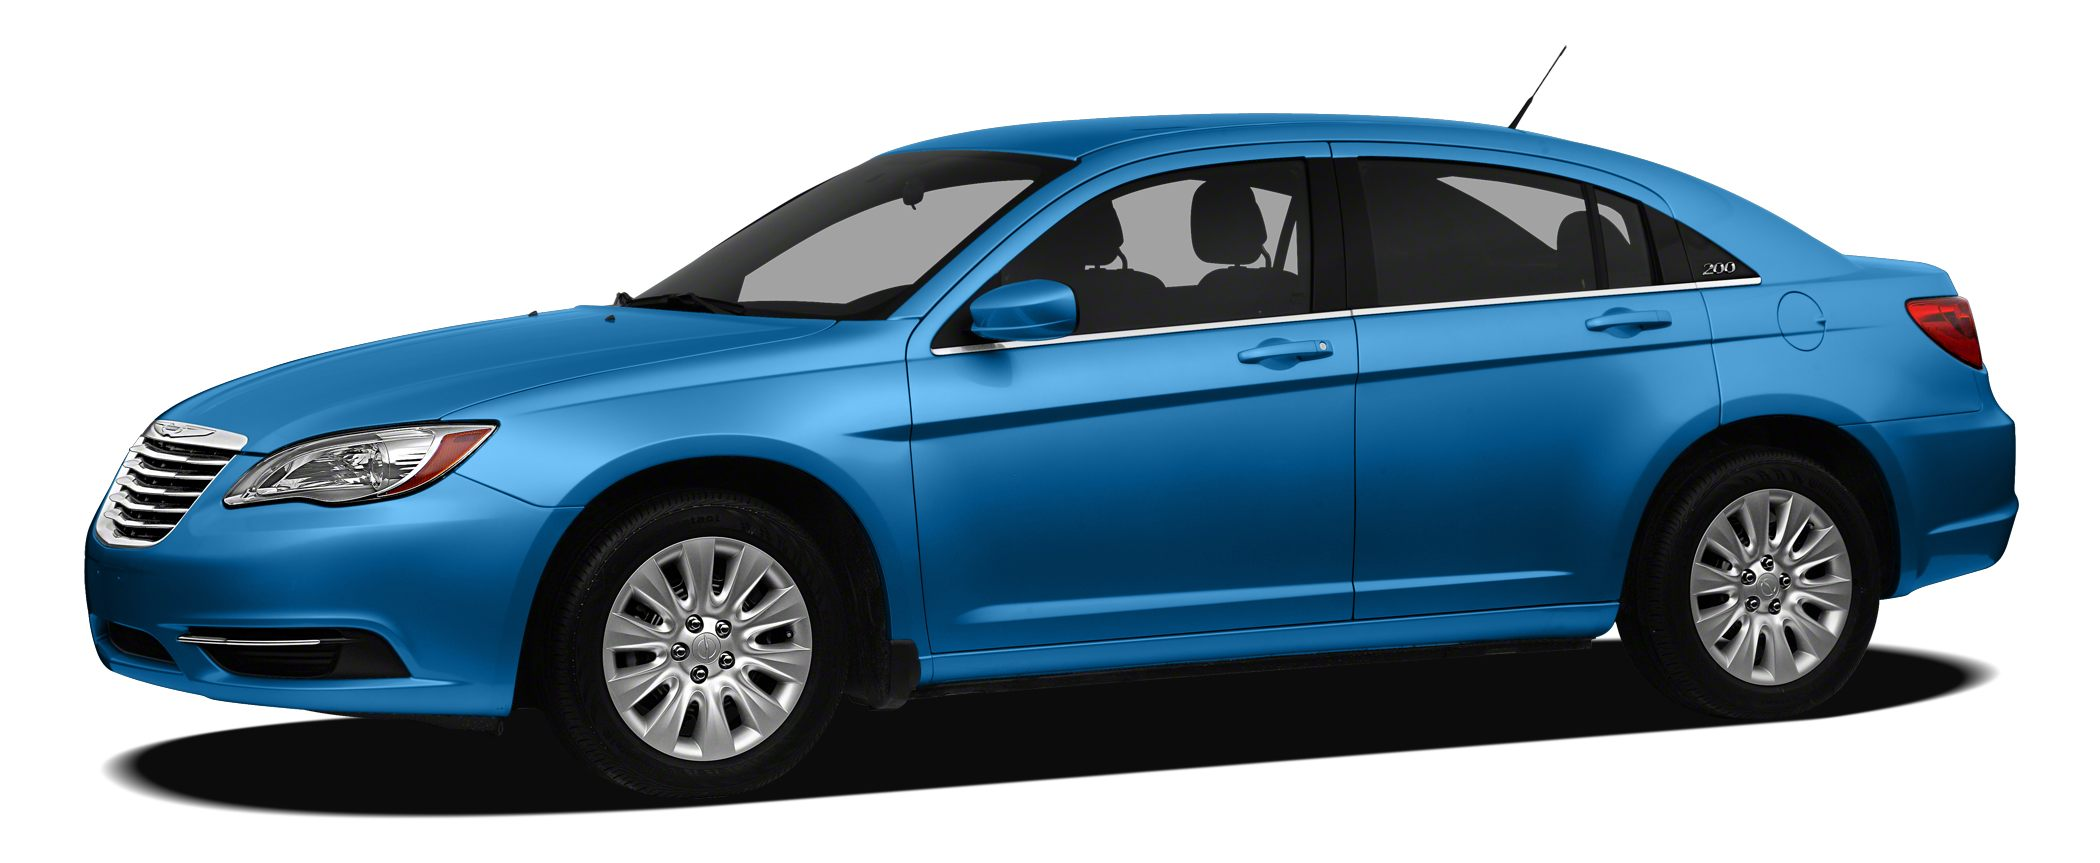 2012 Chrysler 200 LX WE SELL OUR VEHICLES AT WHOLESALE PRICES AND STAND BEHIND OUR CARS  COME